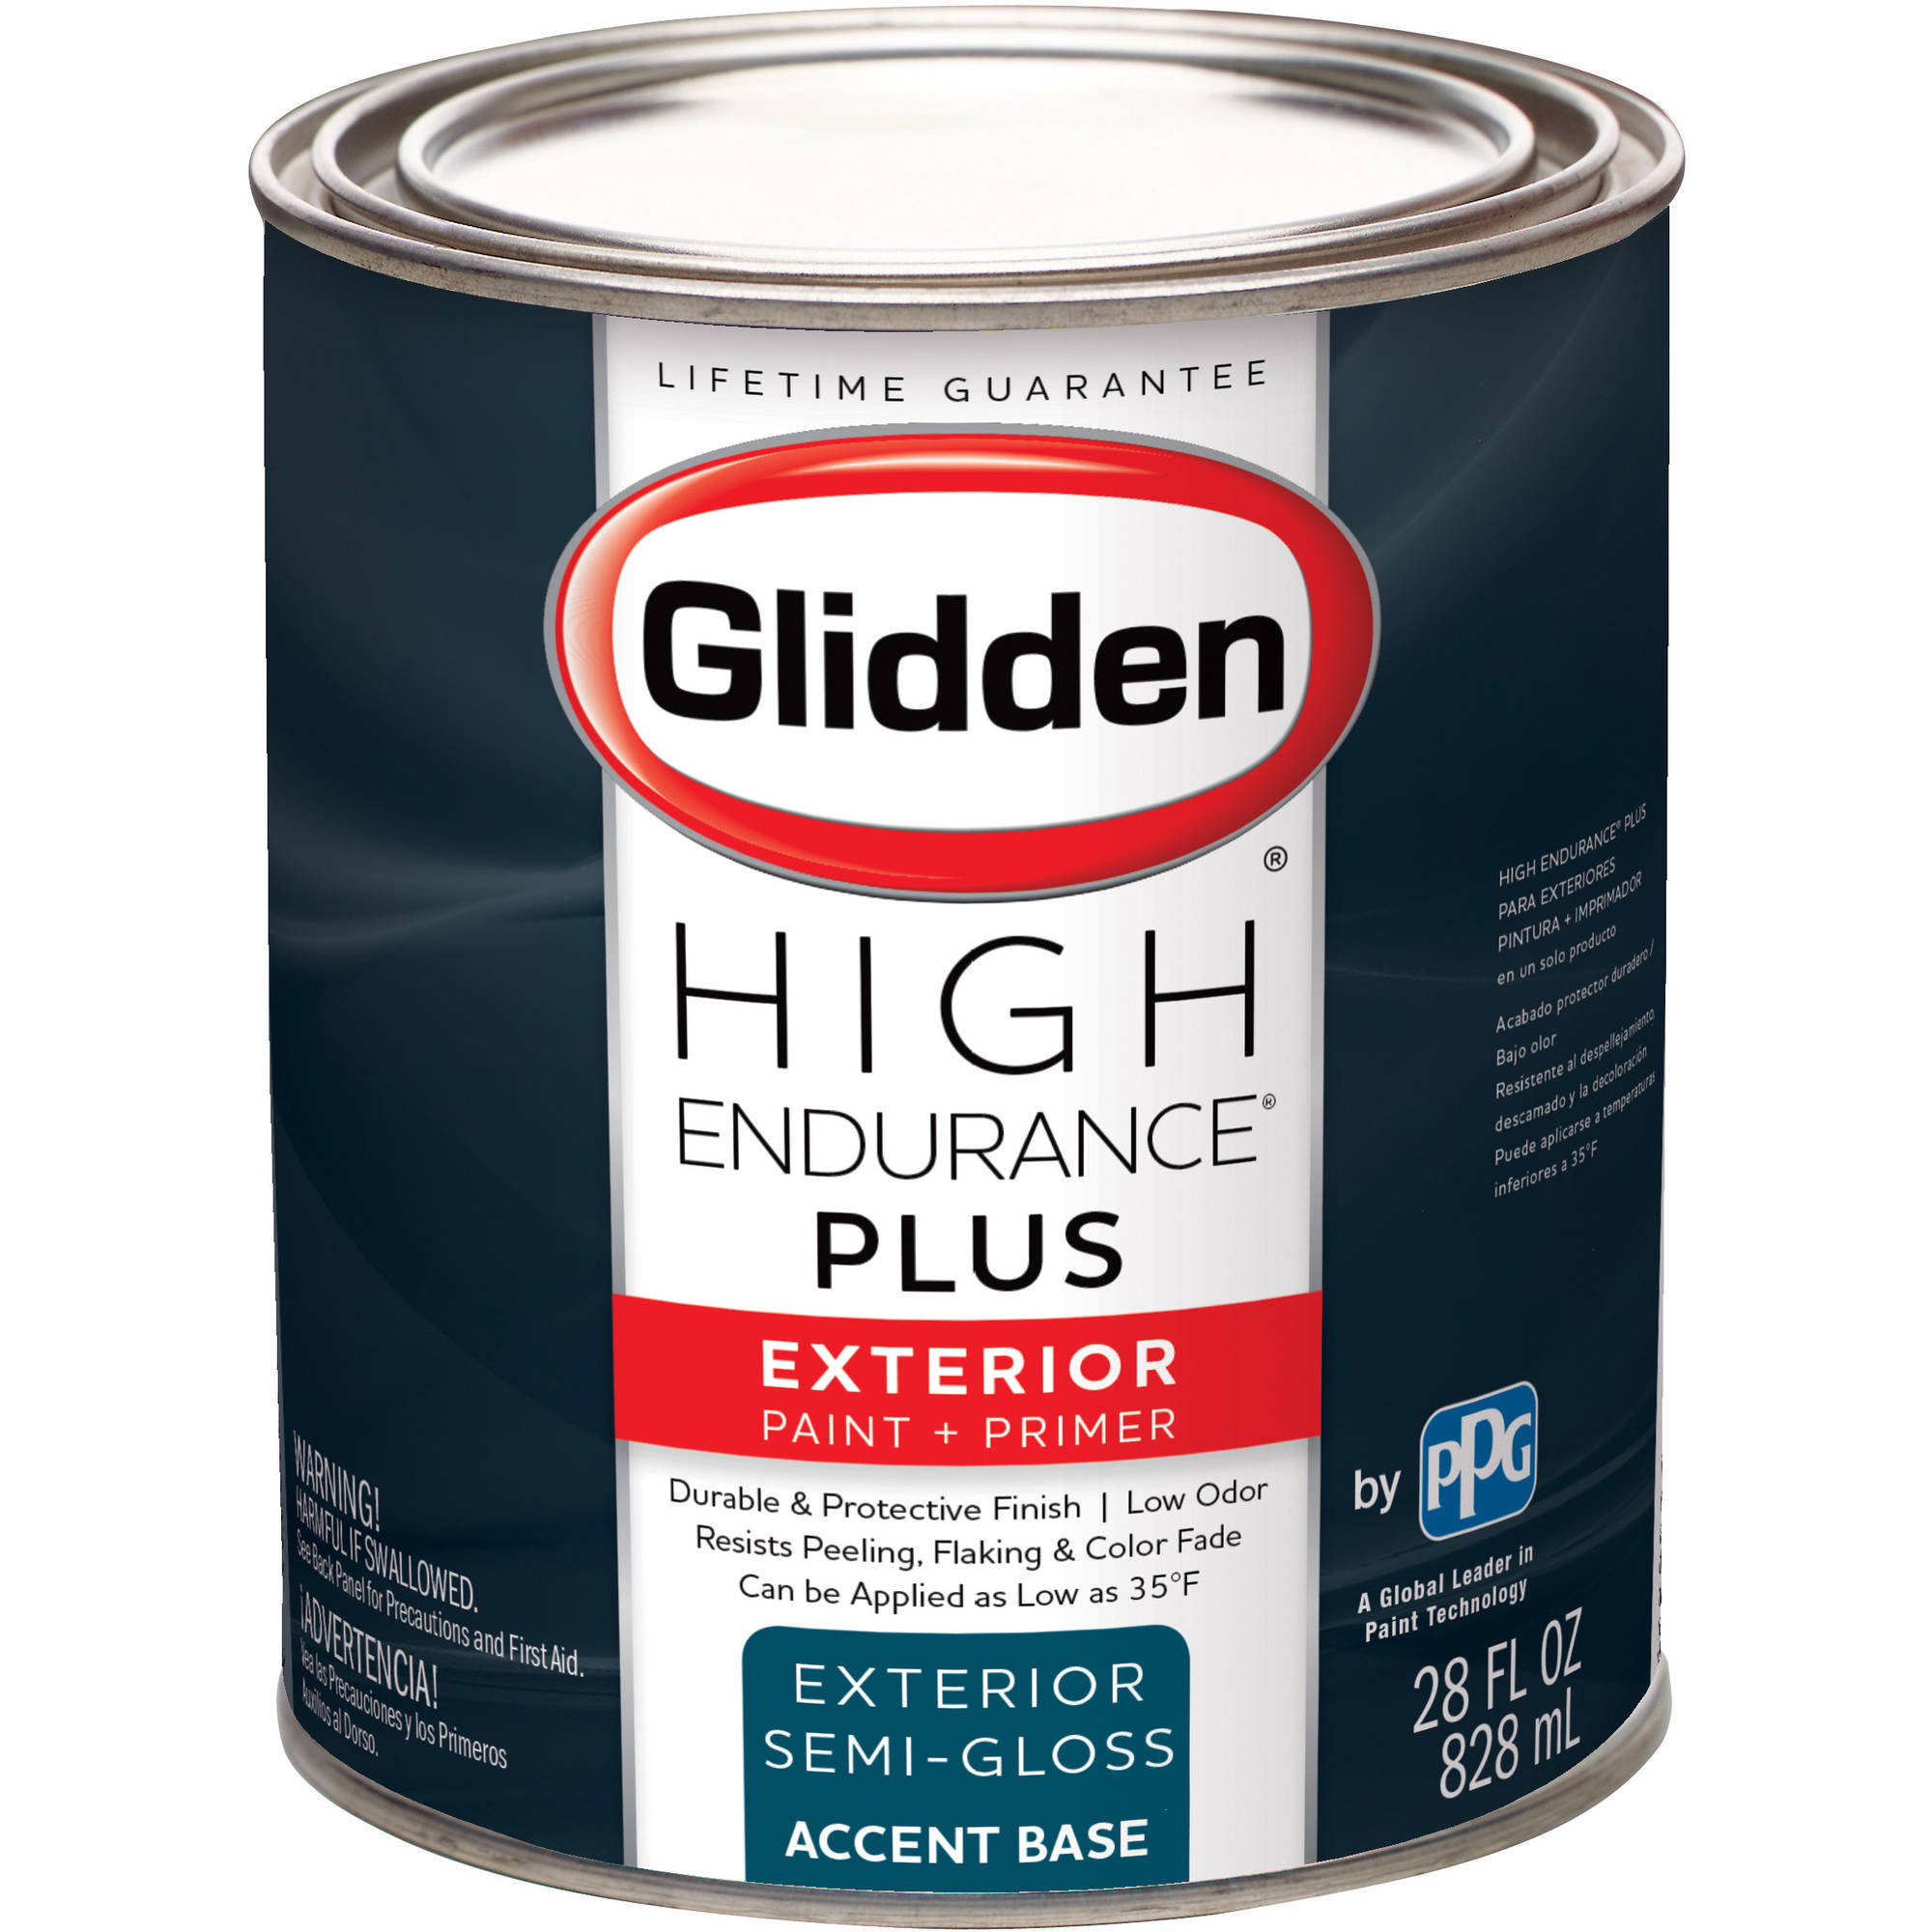 Glidden High Endurance Plus, Exterior Paint, Semi Gloss Finish, Accent  Base, 1 Quart   Walmart.com Part 64